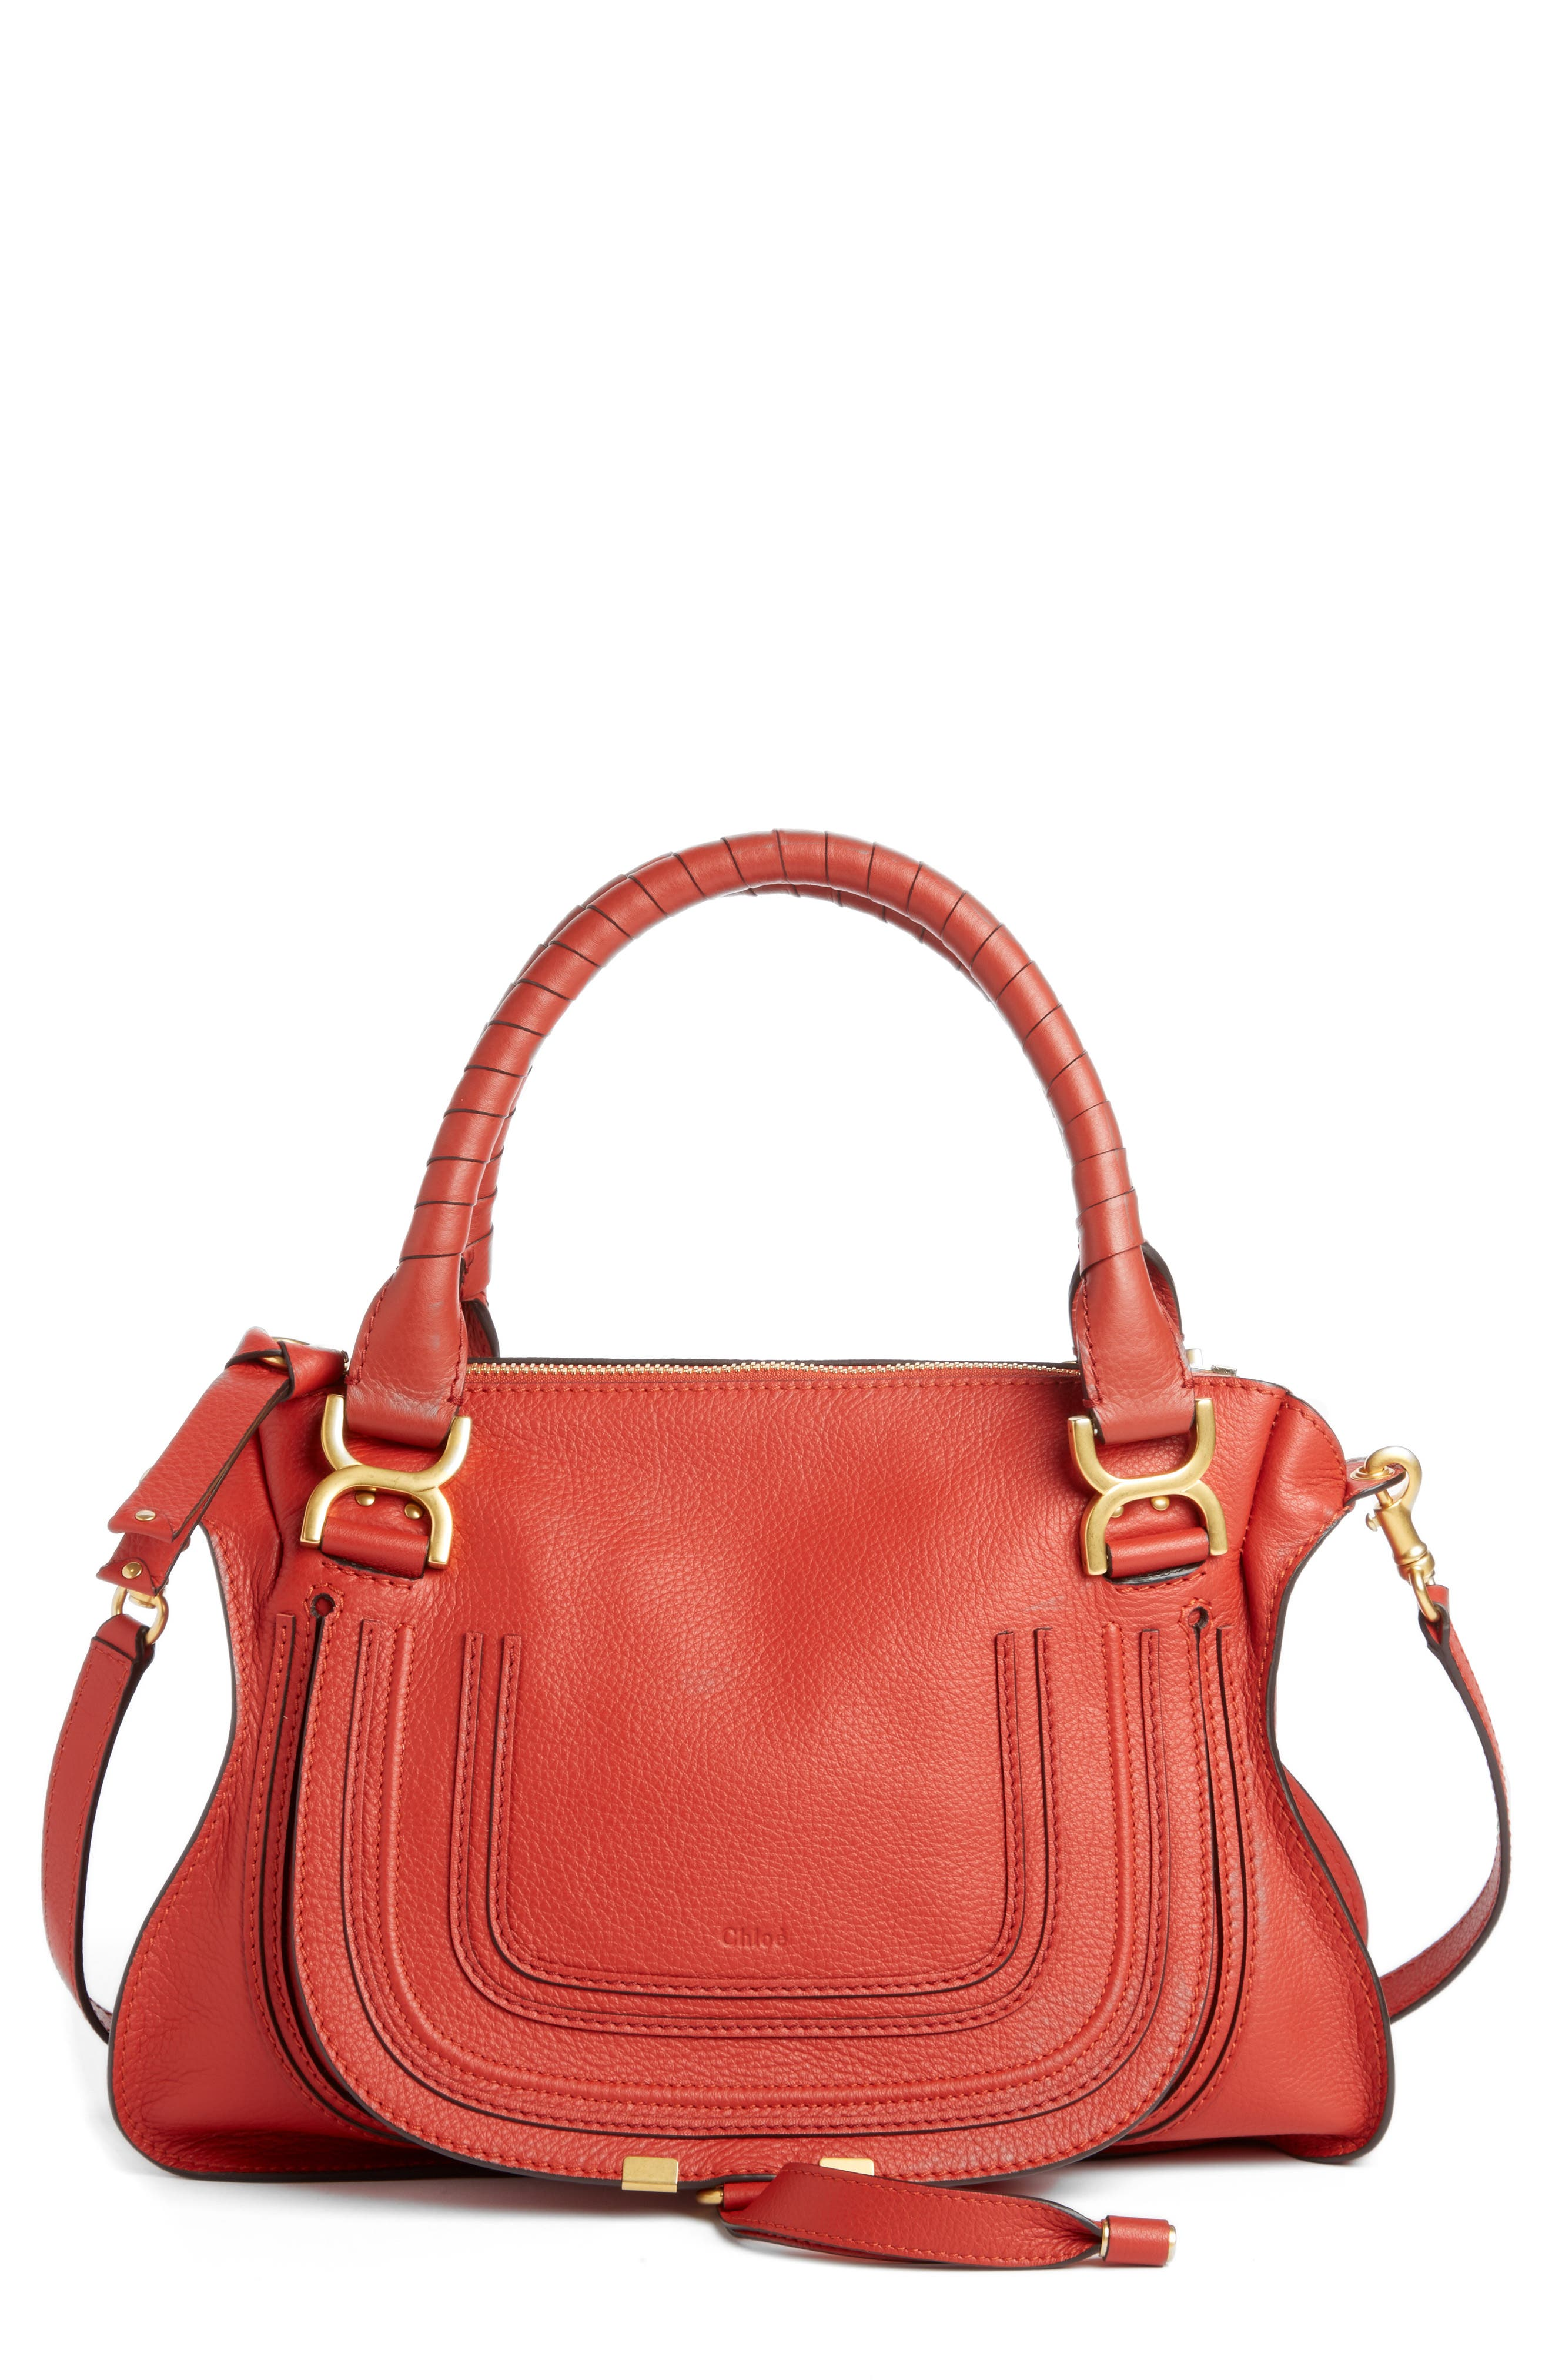 'Medium Marcie' Leather Satchel,                         Main,                         color, Earthy Red